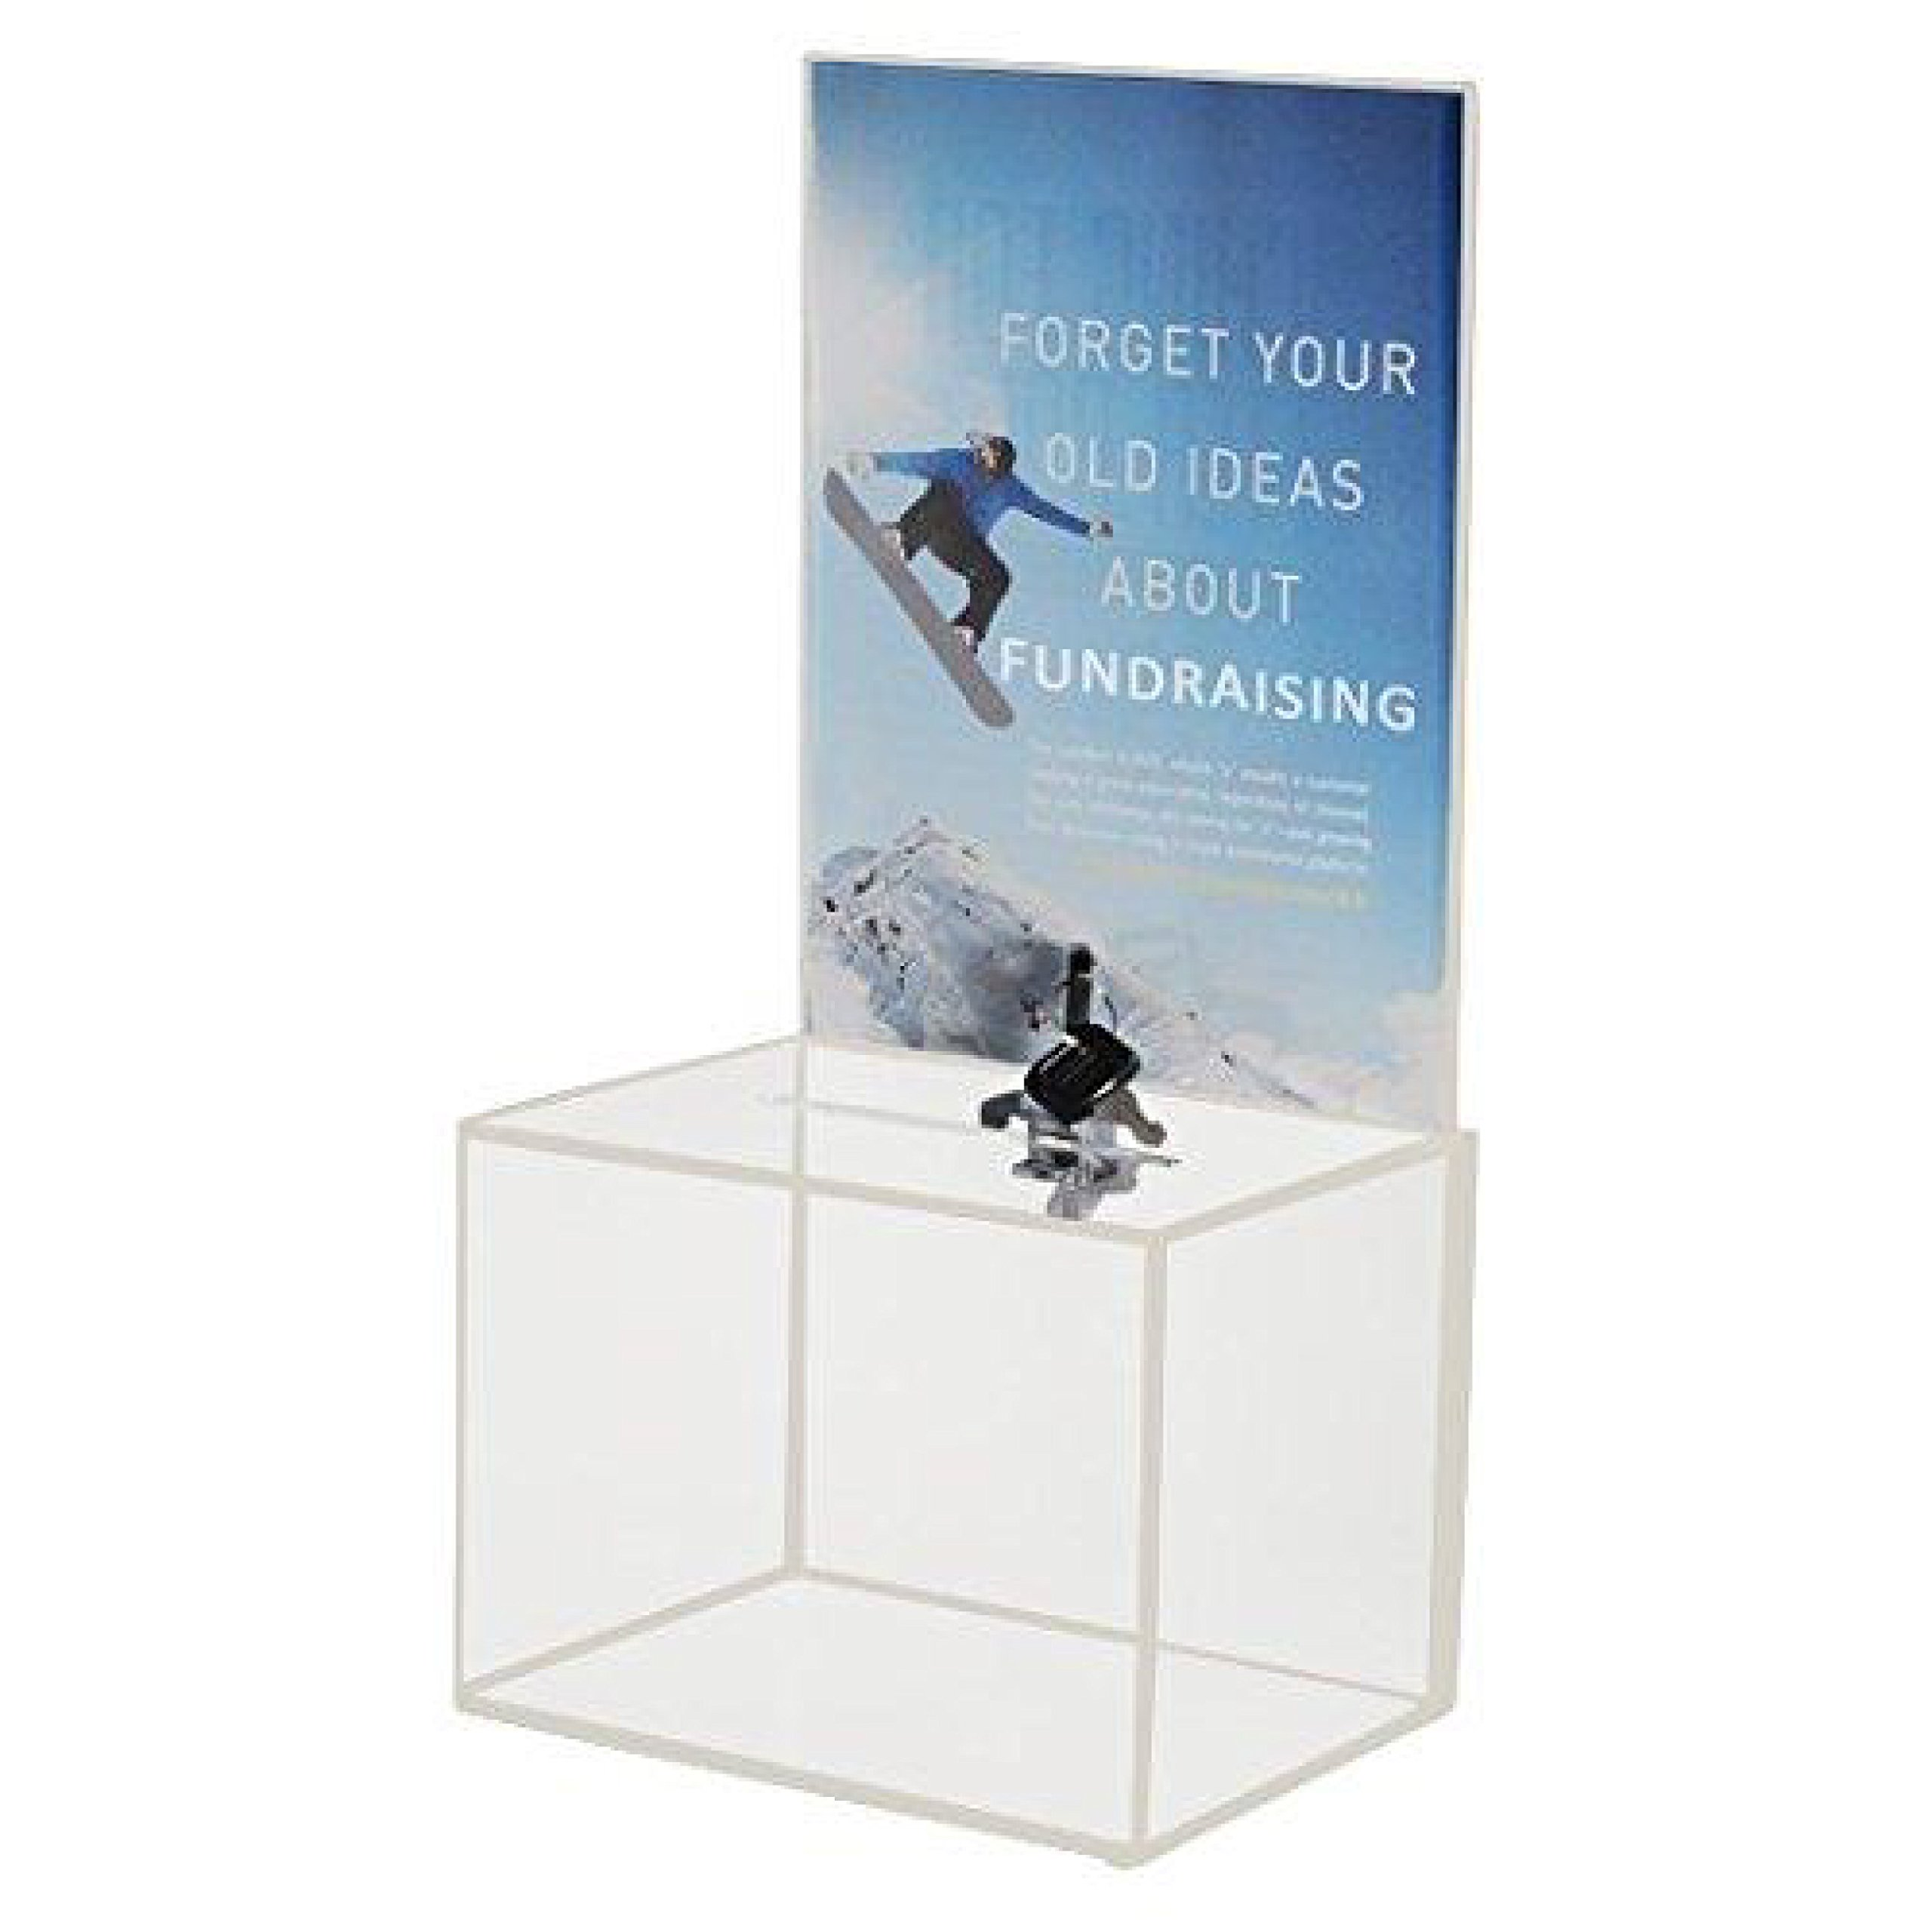 MCB - Medium Acrylic Donation Box - Ballot Box - Ticket Box - Vote Box - Suggestion Box - Comments Box - Locking with 2 Keys - Large Display Area by My Charity Boxes